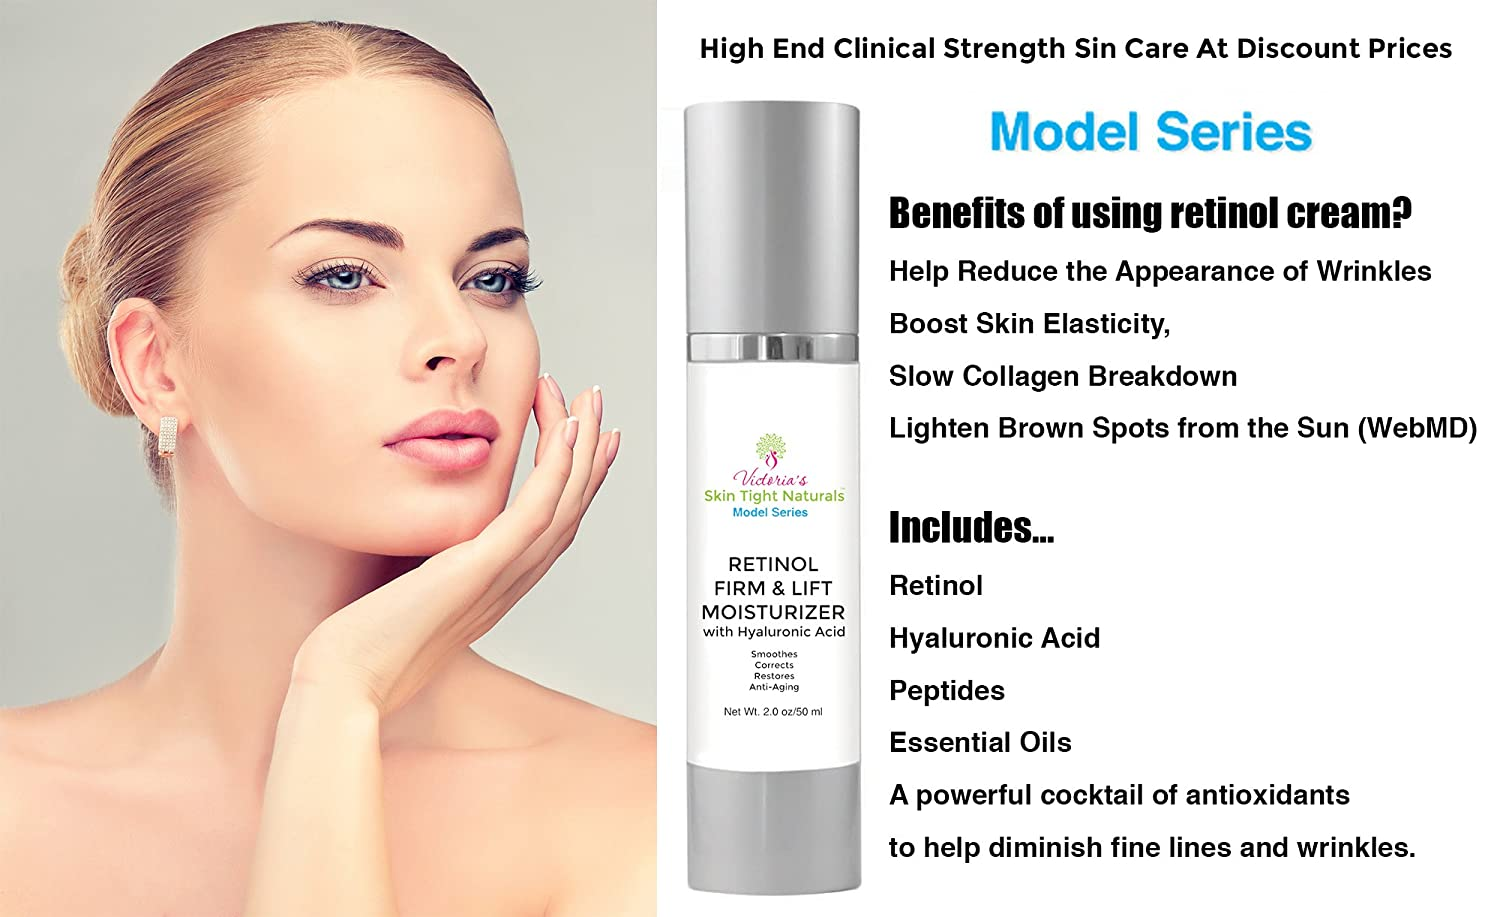 Retinol Firm Lift Moisturizing Cream Celebrity Model Series Hyaluronic Acid Peptide Essential Oils Rejuvenating Skin Tightening Anti Aging Crepe Skin Cream